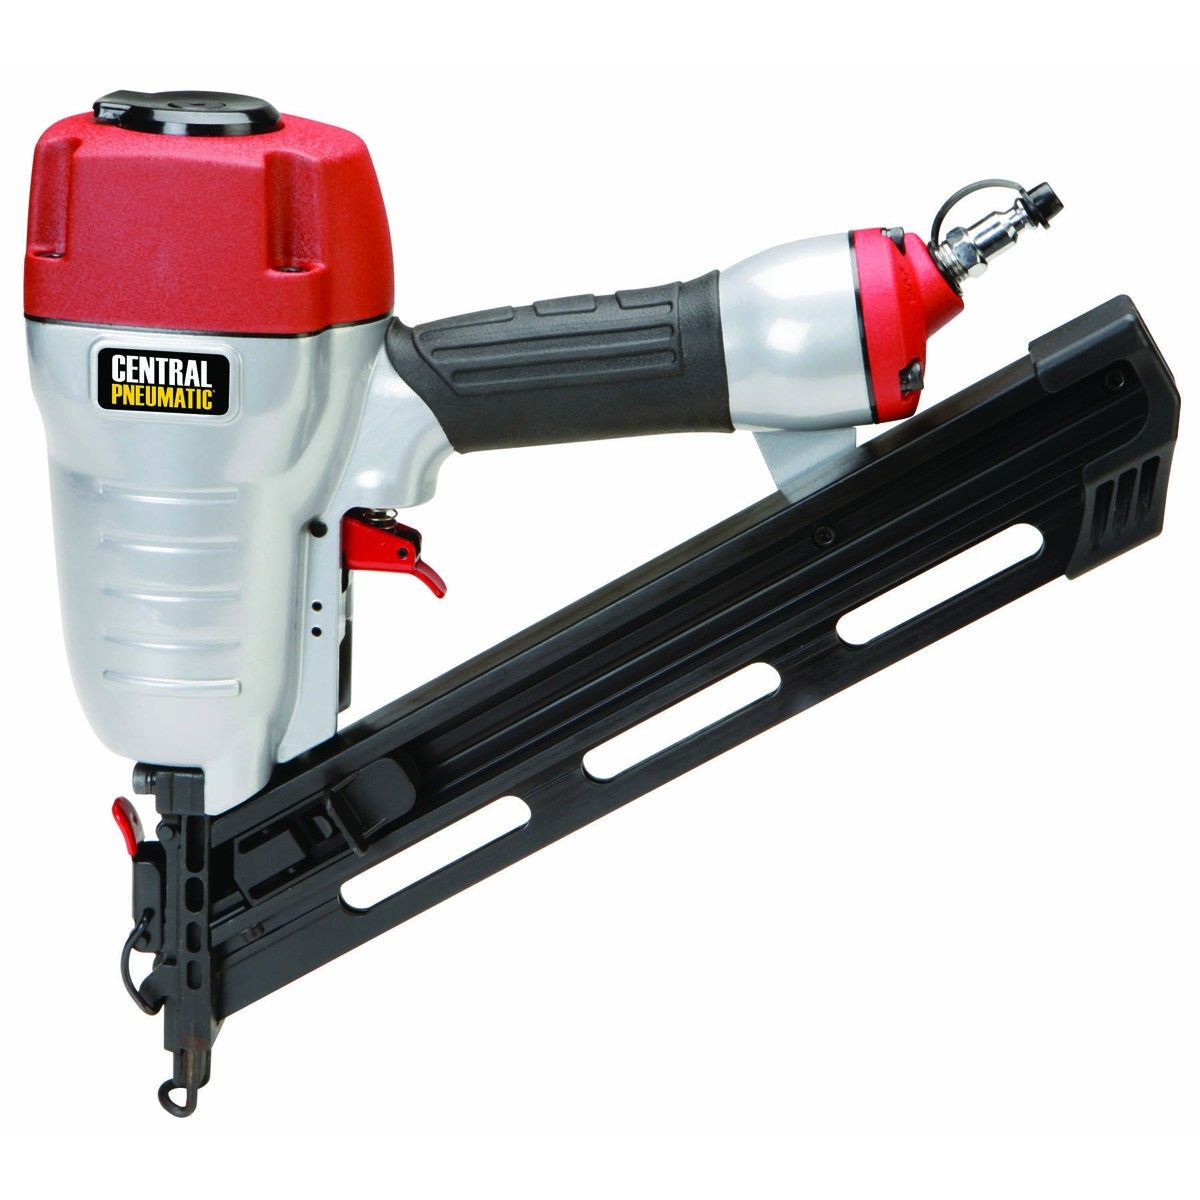 A Finishing Nailer Is Perfect For Jobs Needing A Lot Of Nailing I